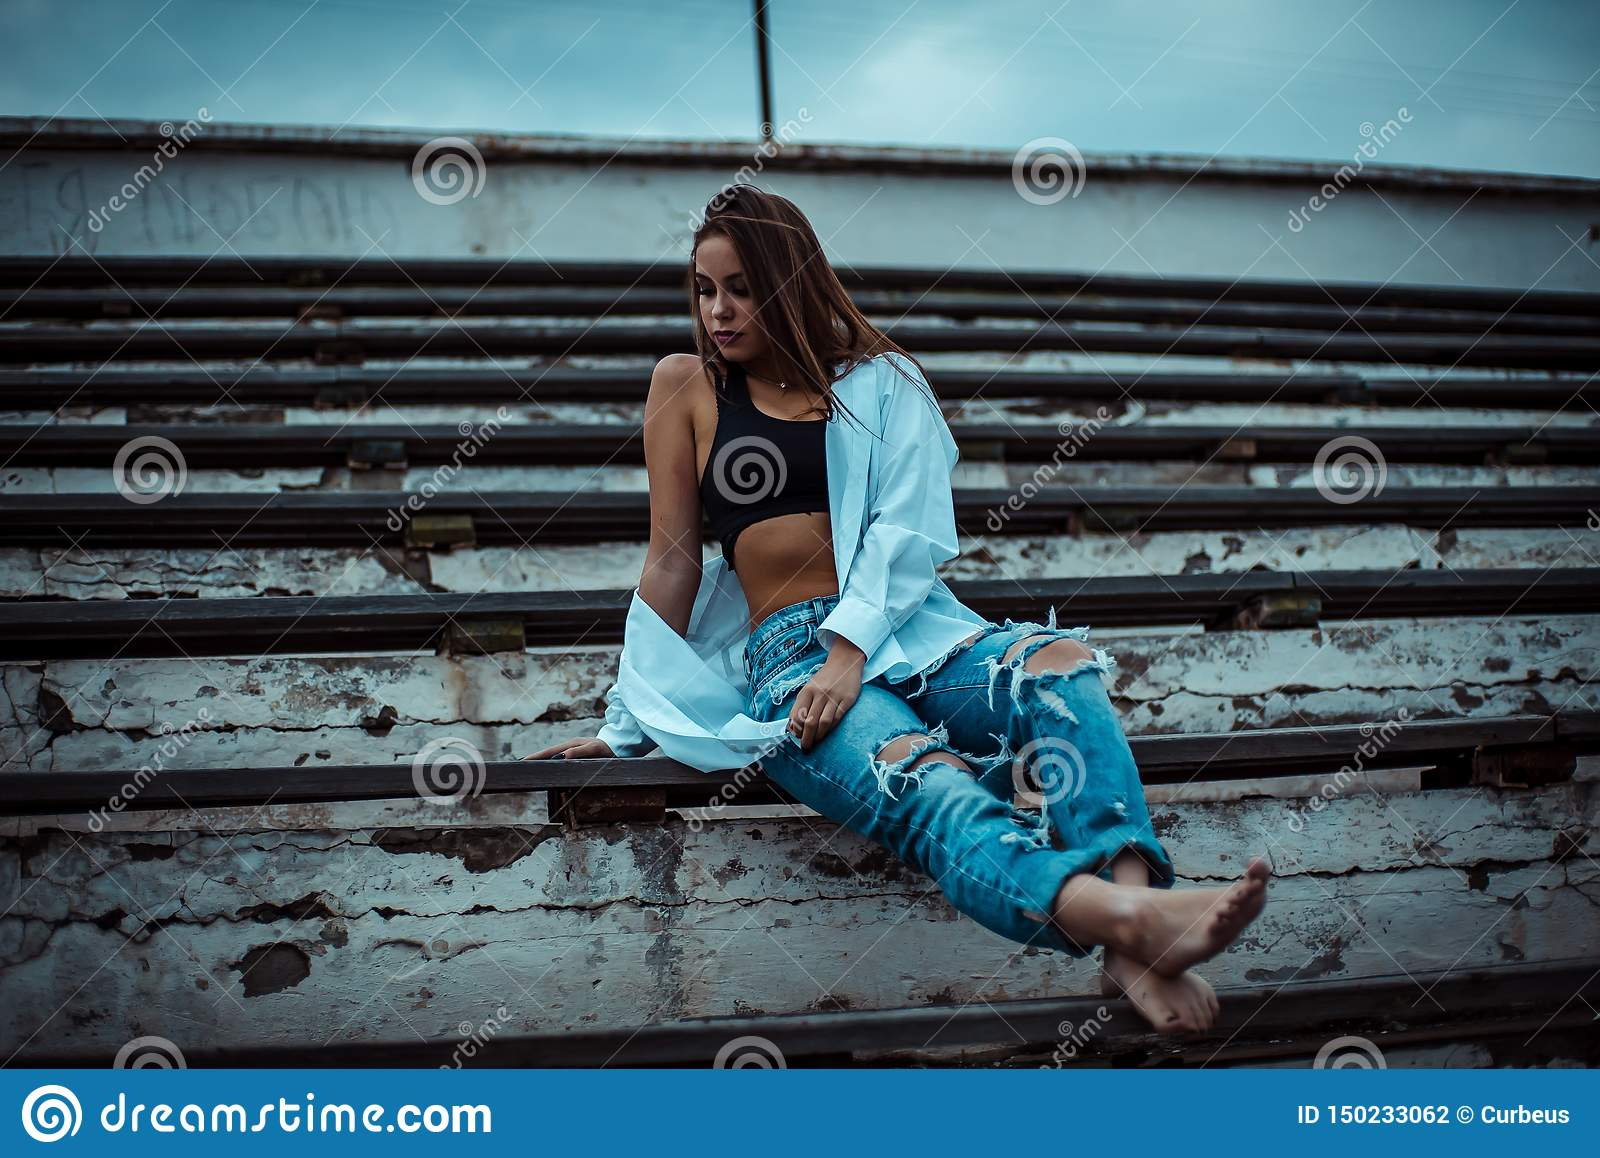 Woman sitting dreaming and relaxing. Sunset. Summer. Outdoor